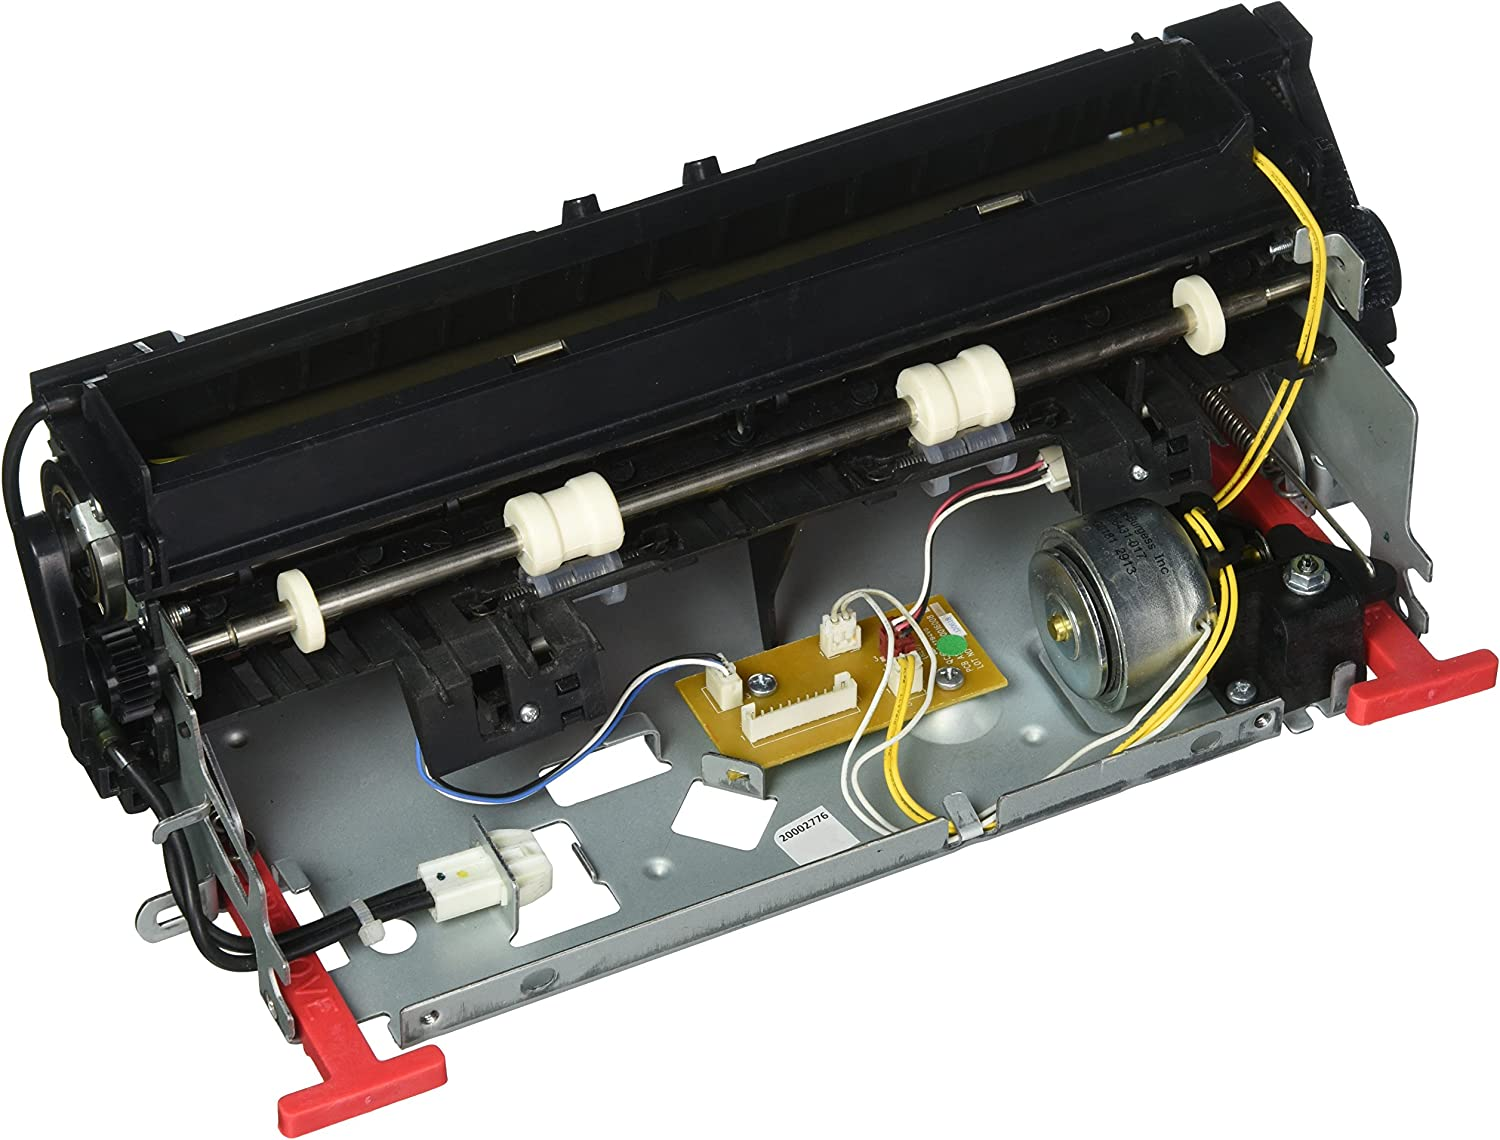 Lexmark LEX40X2592 Fuser Assembly for Optra T640, T642 & T644 Series Laser Printers